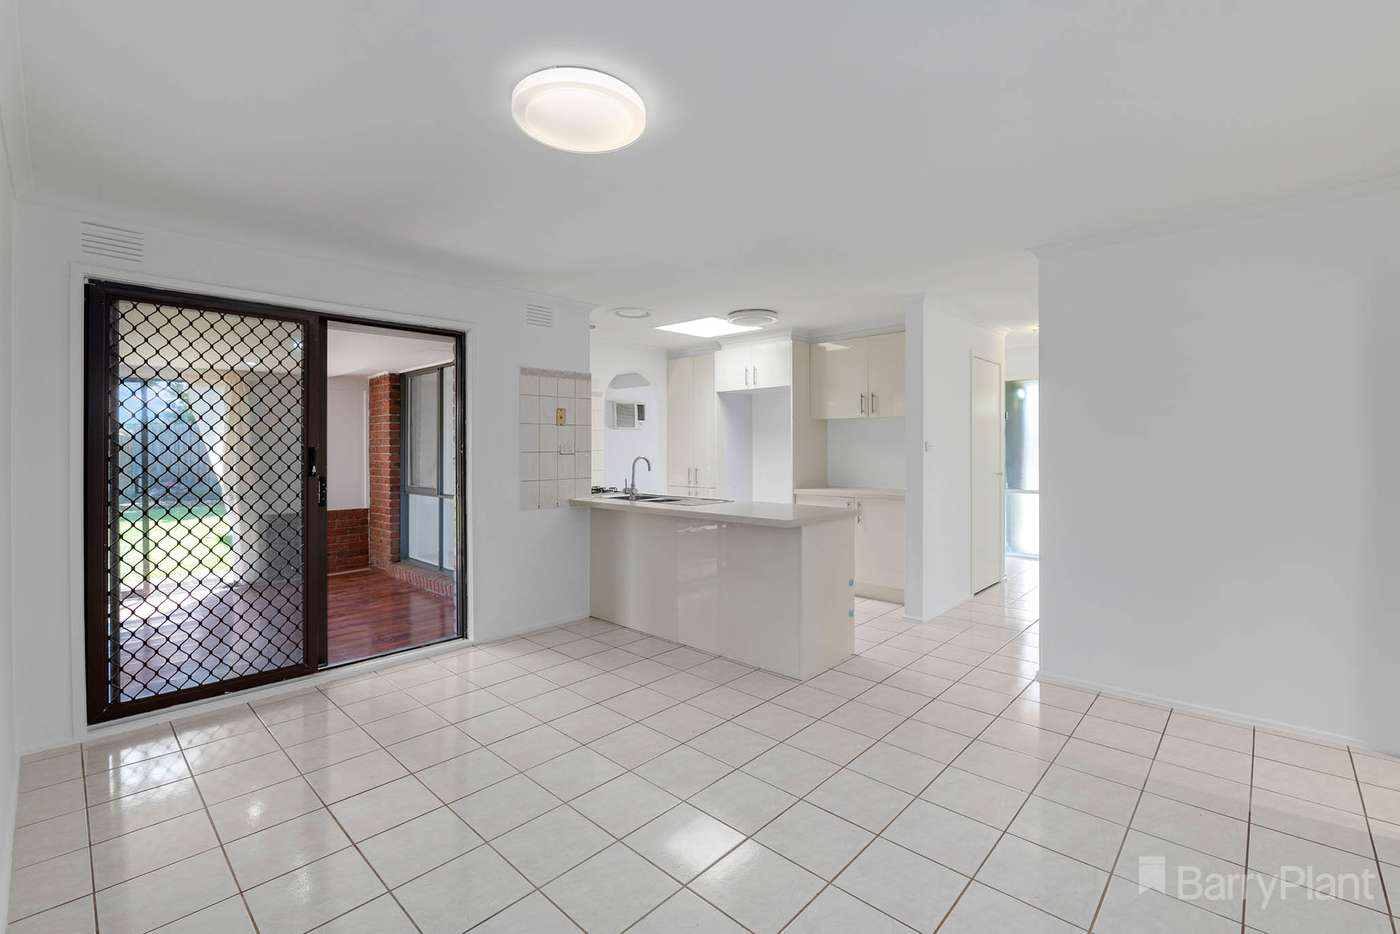 Sixth view of Homely house listing, 2 Wilga Court, Narre Warren VIC 3805